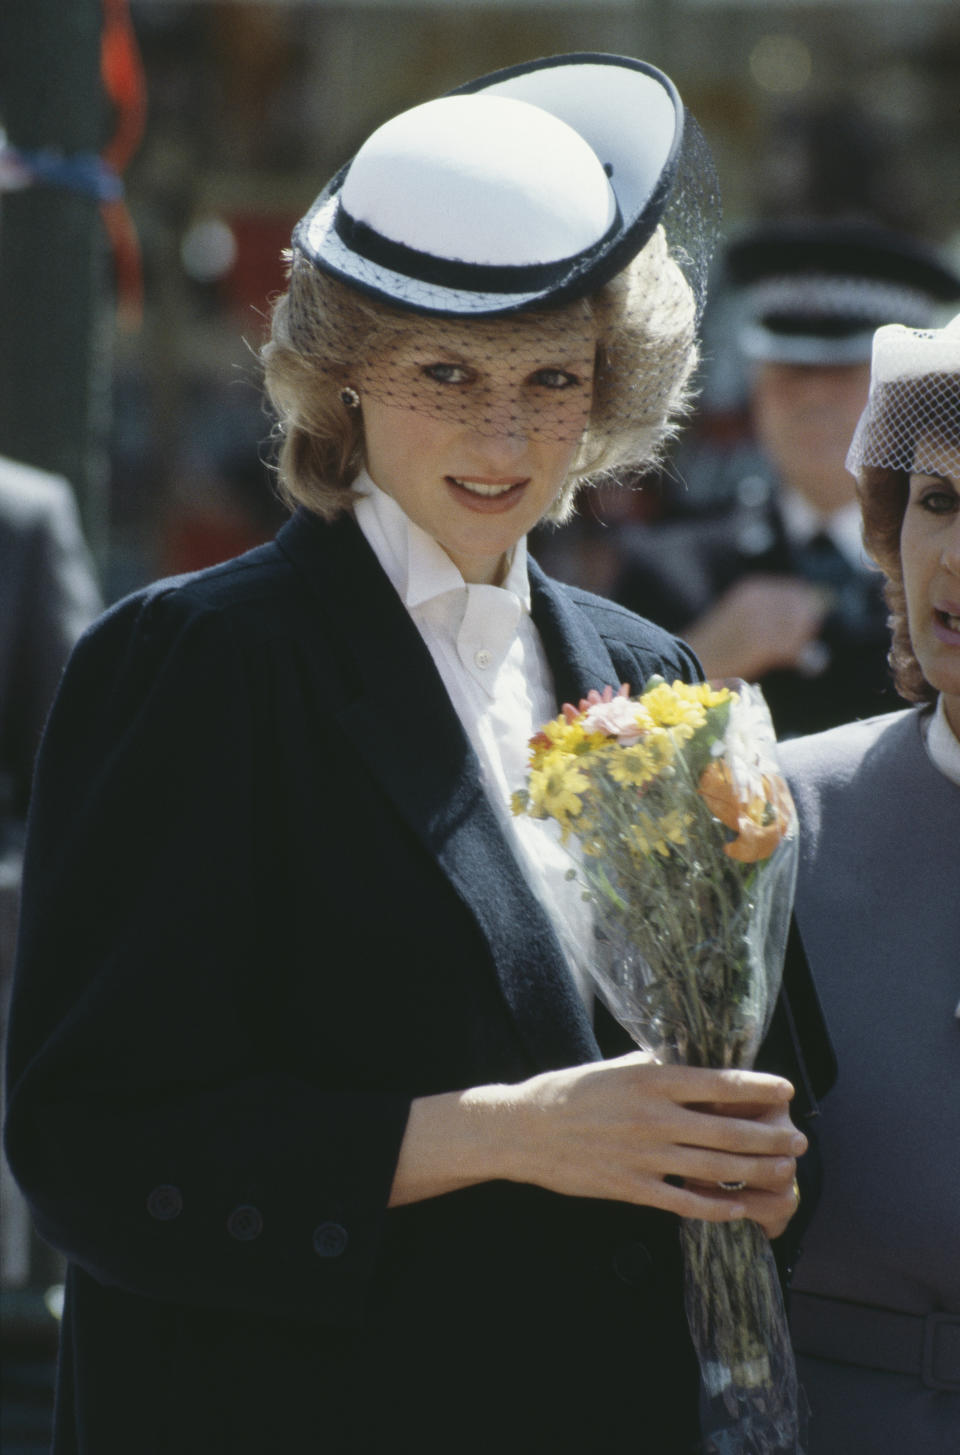 Diana, Princess of Wales  (1961 - 1997) during a visit to Chester and Warrington, UK, May 1984. She is wearing a Jan Van Velden coat and a hat by Frederick Fox.  (Photo by Terry Fincher/Princess Diana Archive/Getty Images)